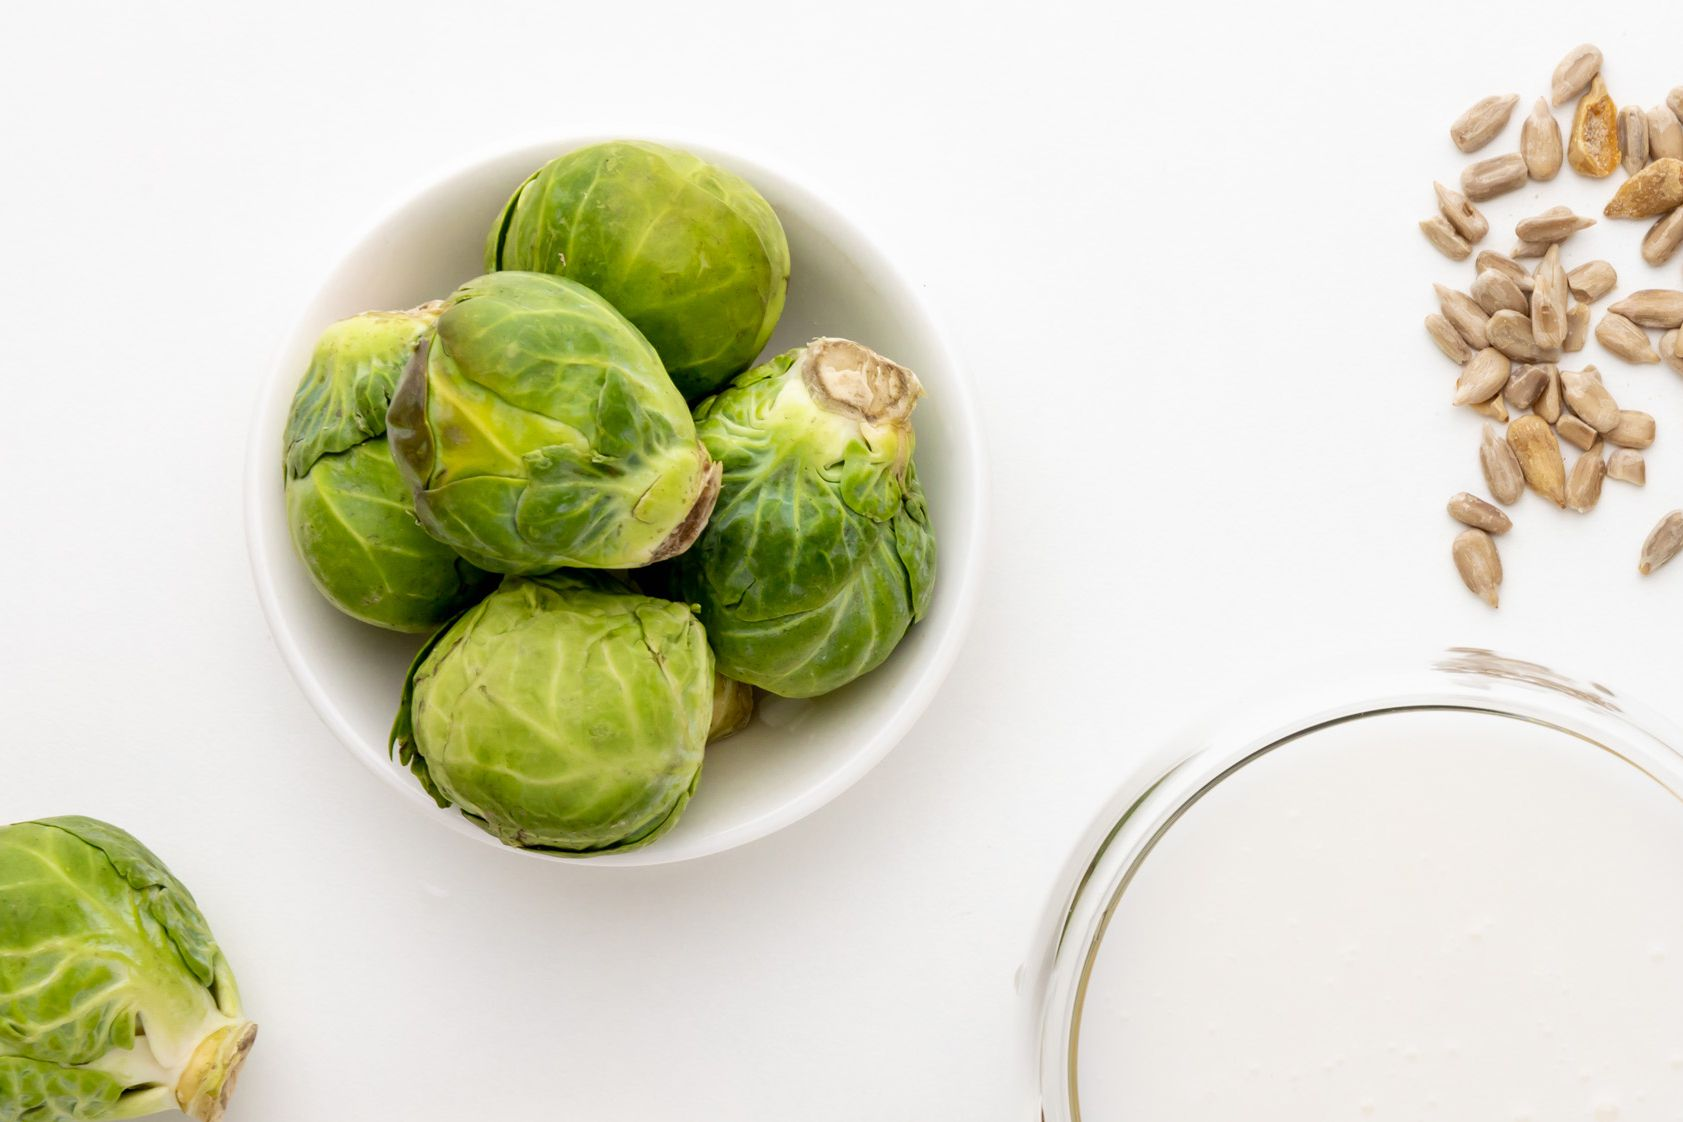 Brussel sprouts, sunflower seeds, and milk